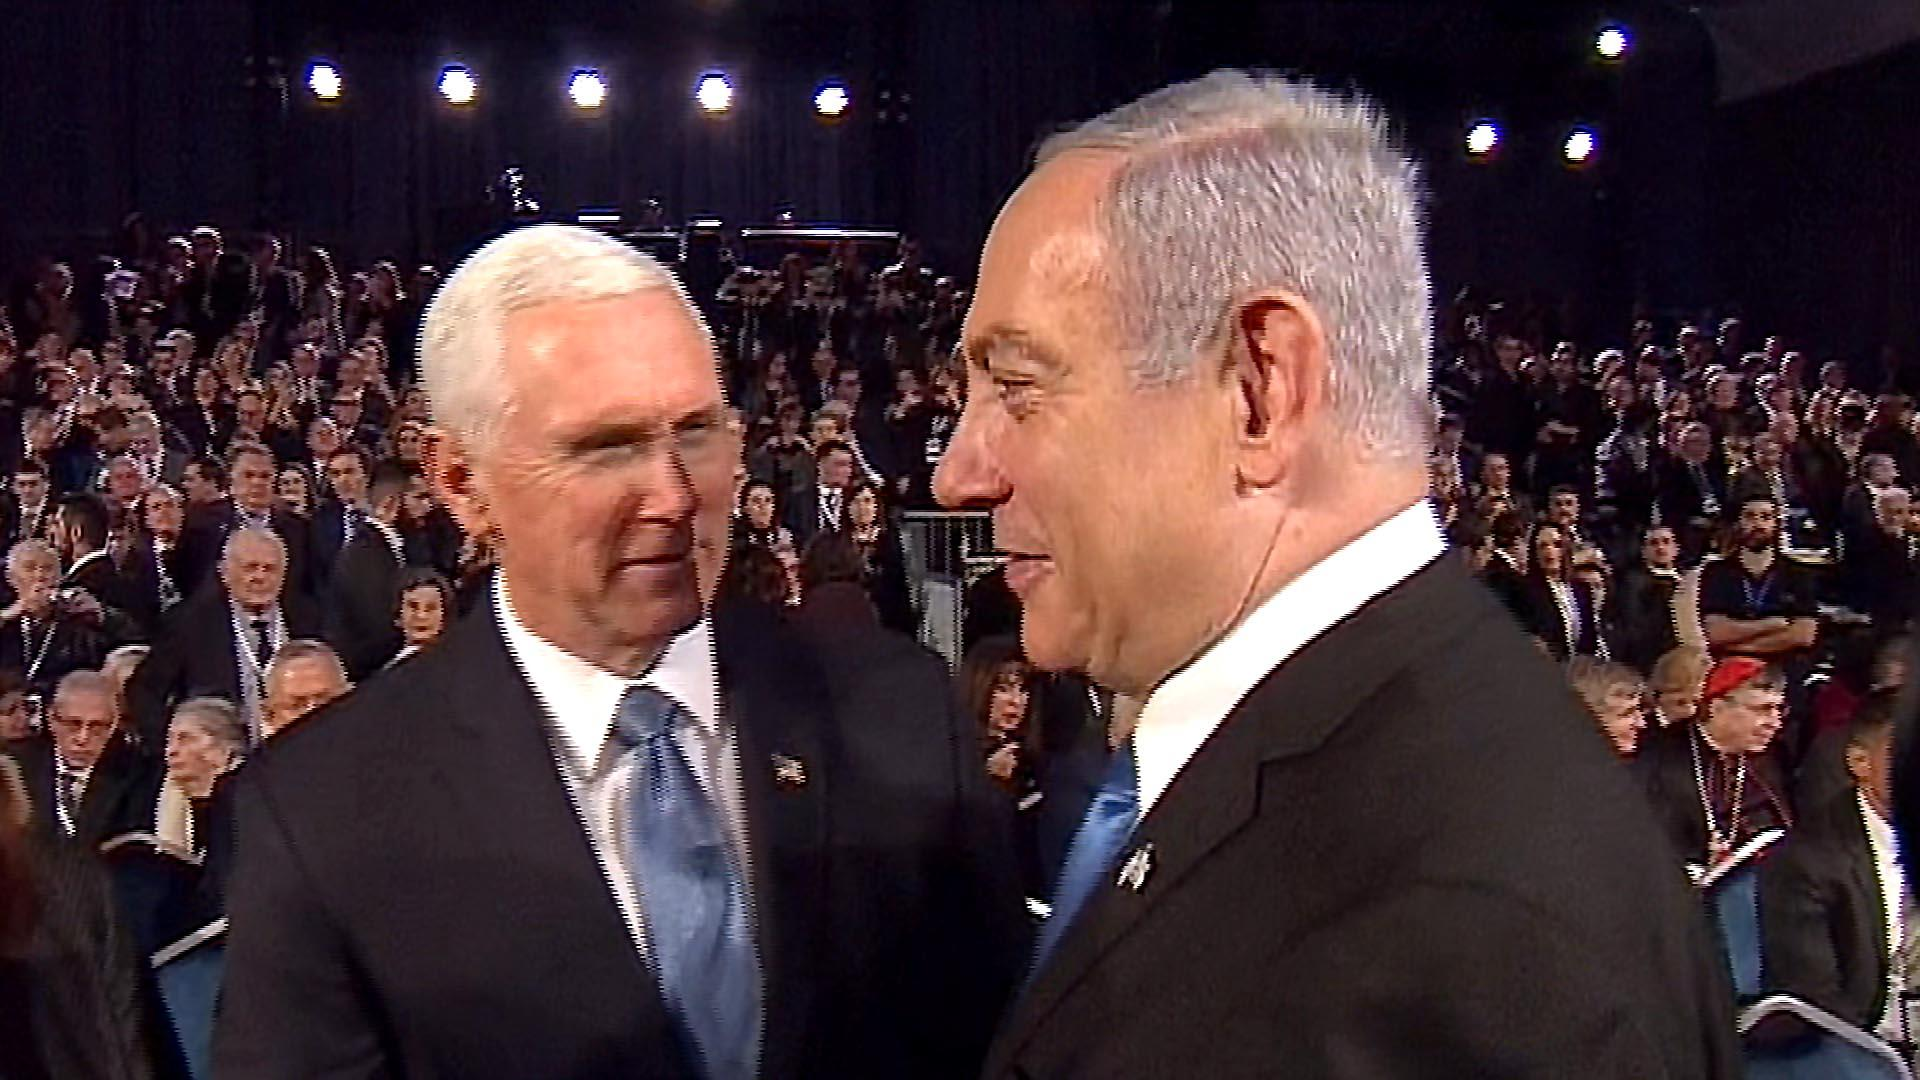 Hot mic catches Pence telling Netanyahu 'He's unstoppable'